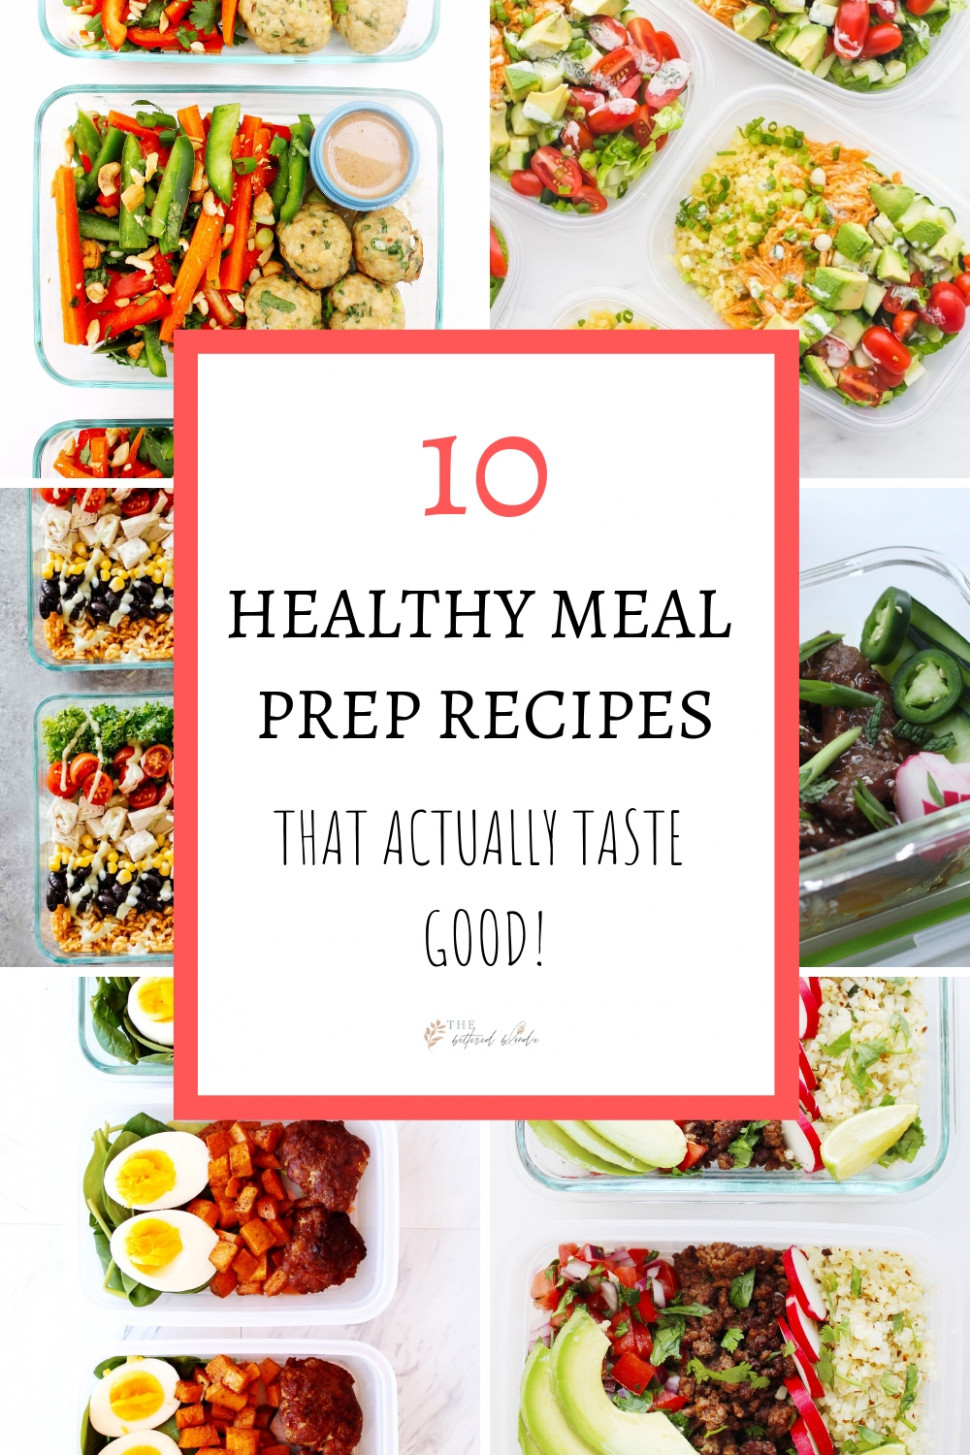 14 Healthy Meal Prep Recipes That Actually Taste Good - The ..